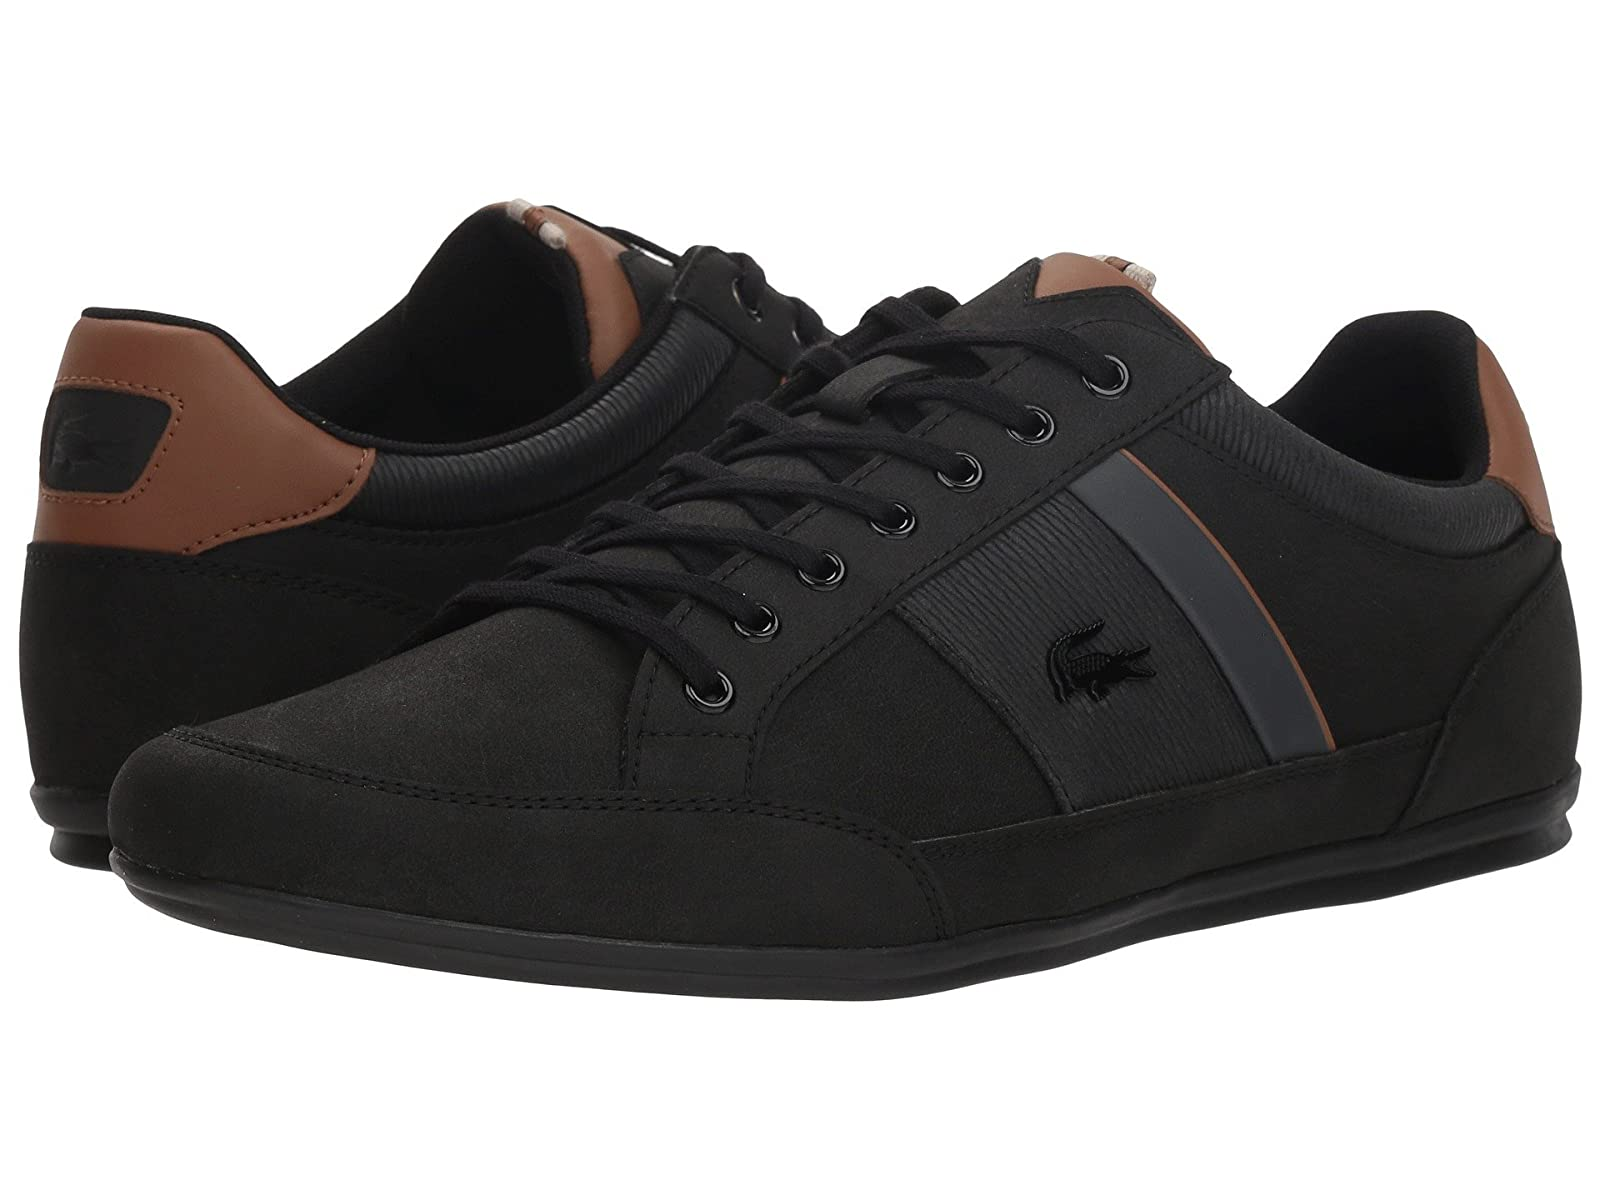 Lacoste Chaymon 318 2Atmospheric grades have affordable shoes